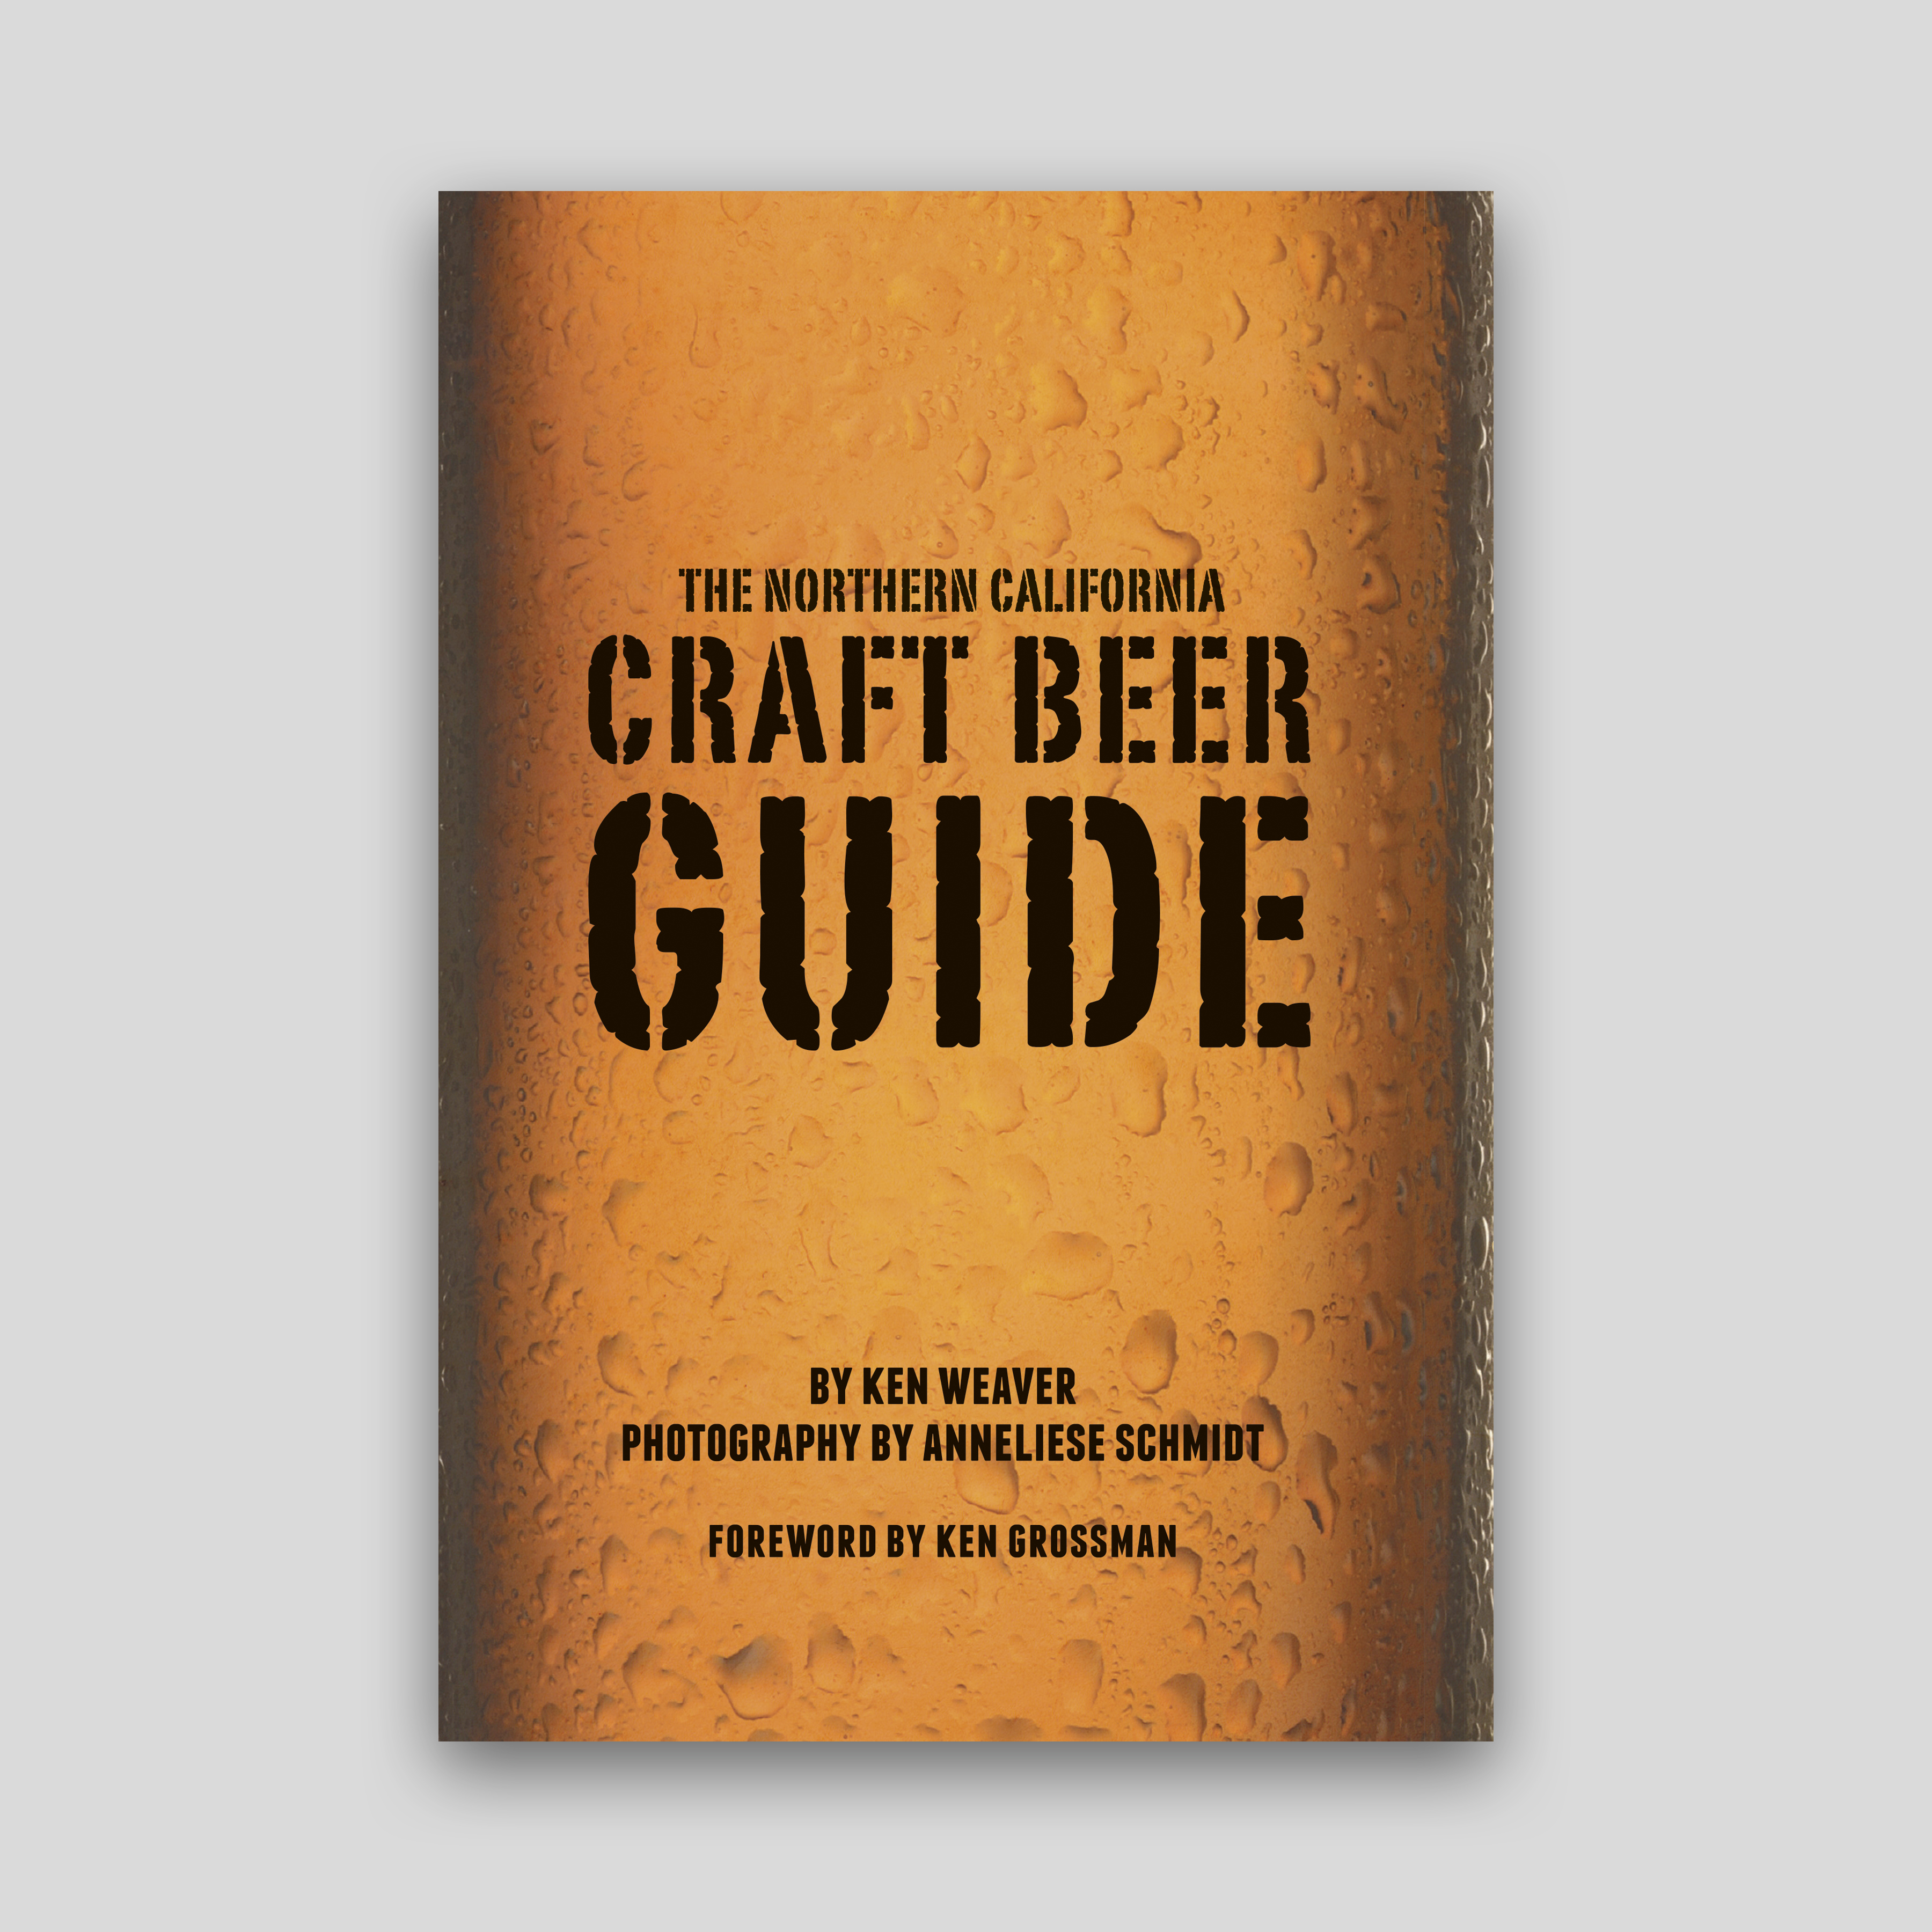 Book Cover Craft Beer : The northern california craft beer guide cameron company